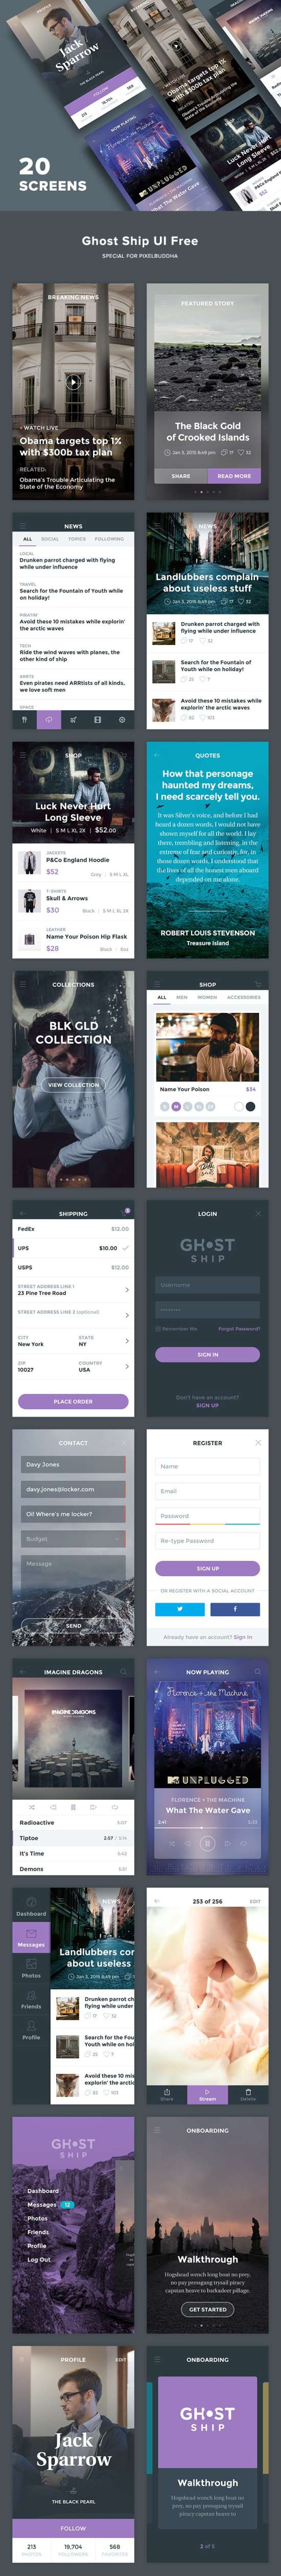 ghost_ship_mobile_app_ui_kit_psd